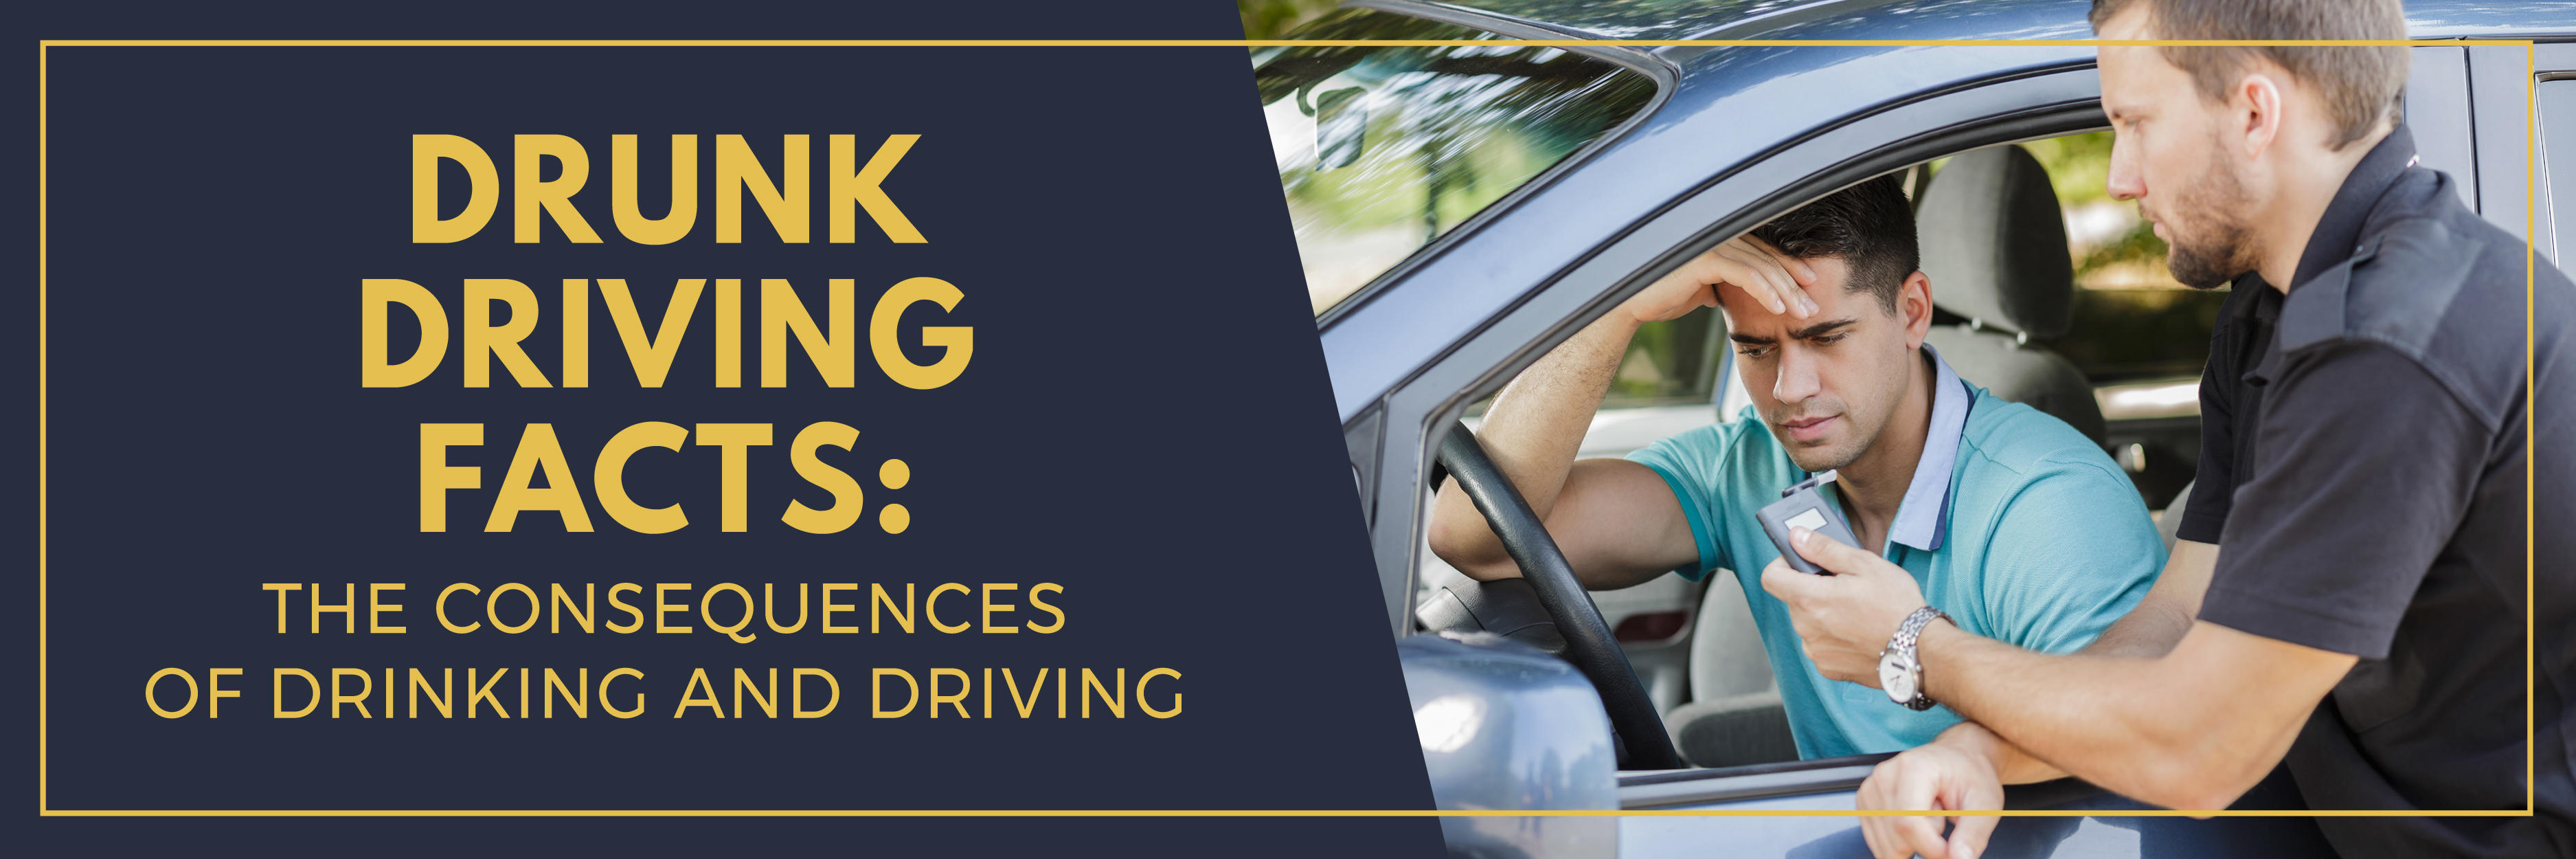 an analysis of the consequences of drunk driving Category: exploratory essays, drunk driving title: drinking alcohol and driving my account drinking alcohol and driving length: 871 words (25 double-spaced.